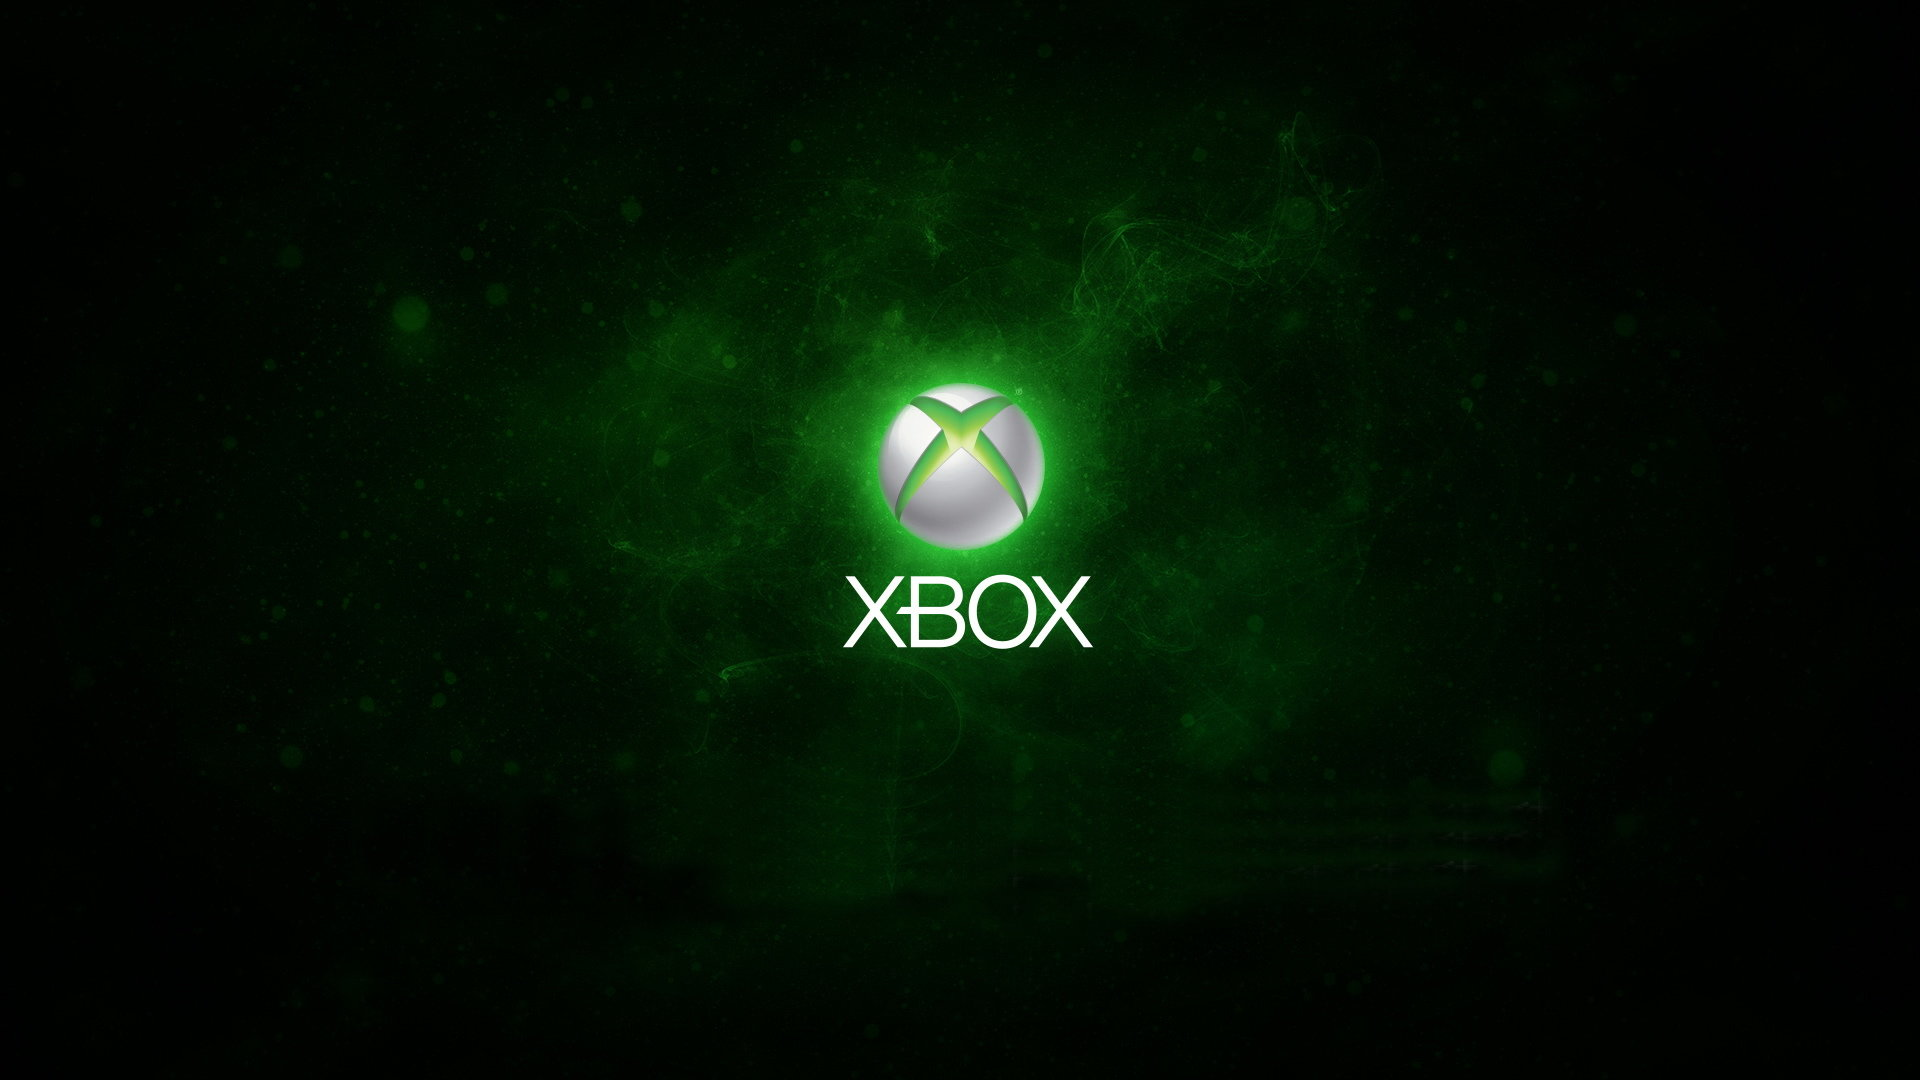 Xbox One Wallpapers for Console - WallpaperSafari